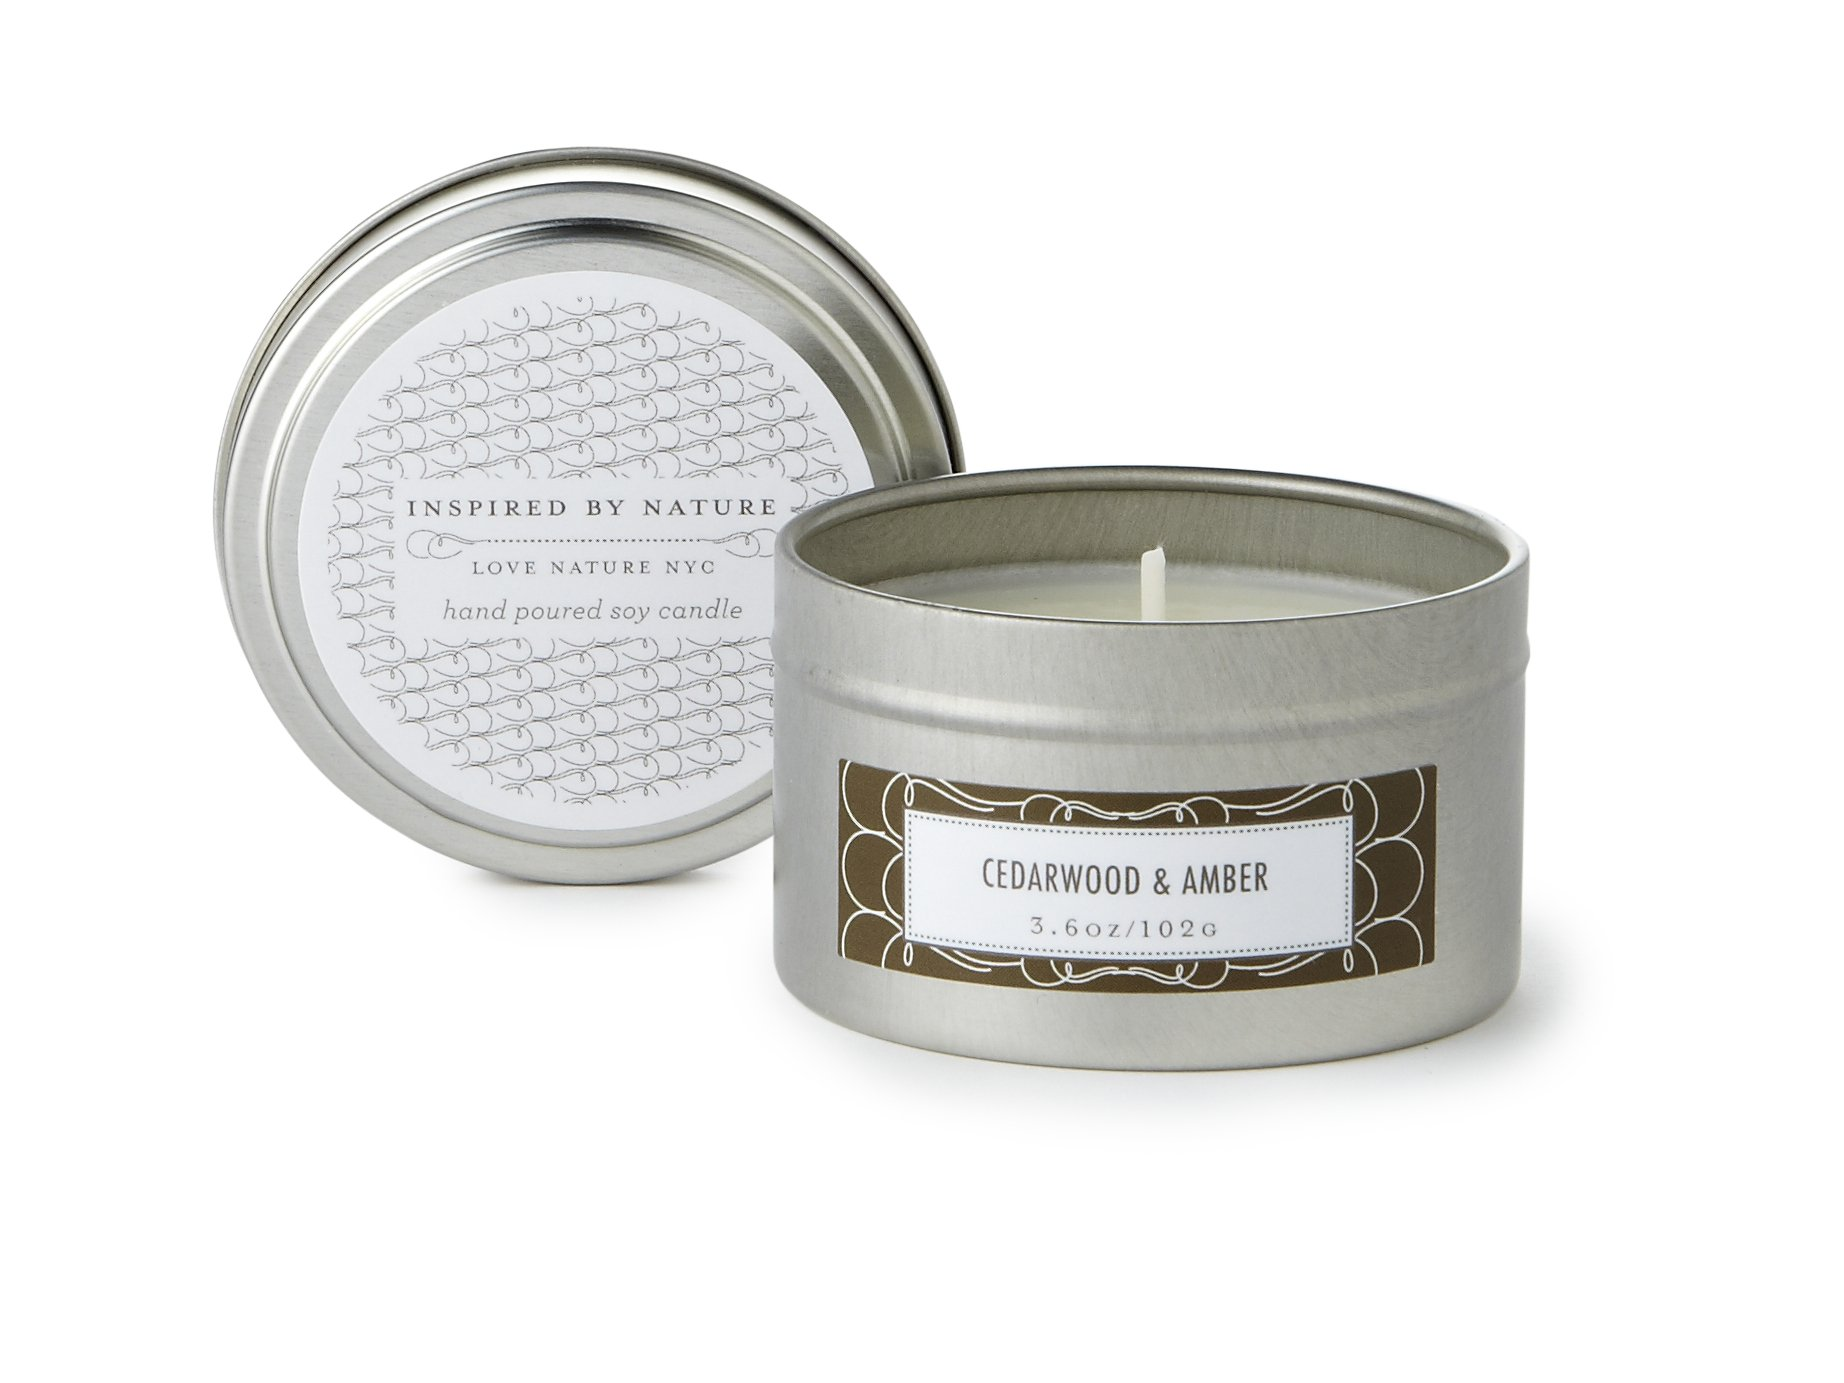 LOVE NATURE NYC Natural Soy Candle Tin, Cedarwood Amber Scented, Clean Burning Non-Toxic, Fragrance Notes of Cedarwood, Amber, Sandalwood, Musk, Bergamot and Lavender, 25-30 Hours